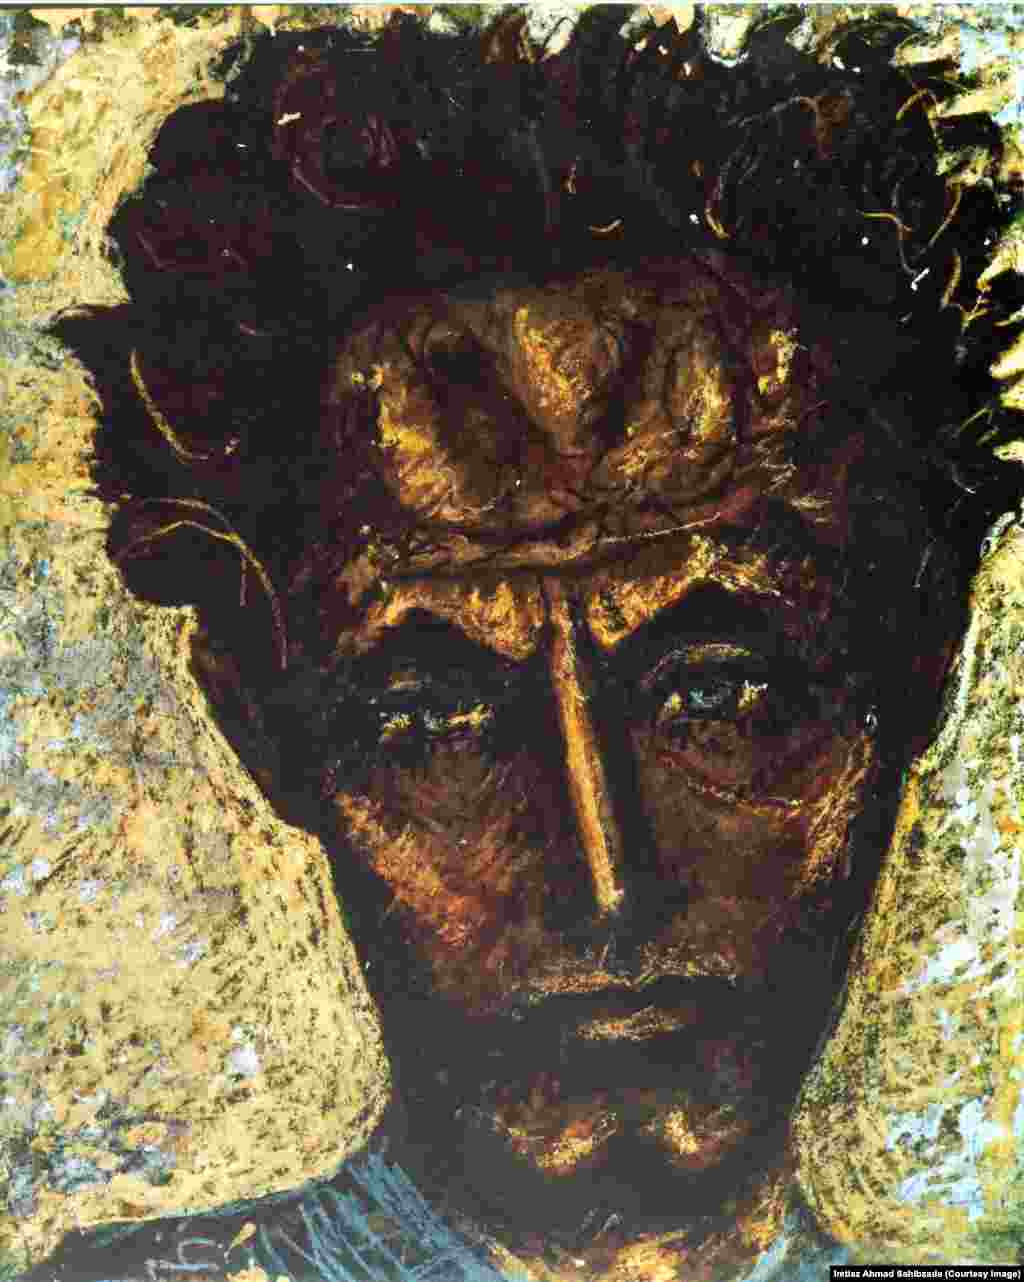 Self-portrait, depicting a tortured soul with a crown of thorns around his head.